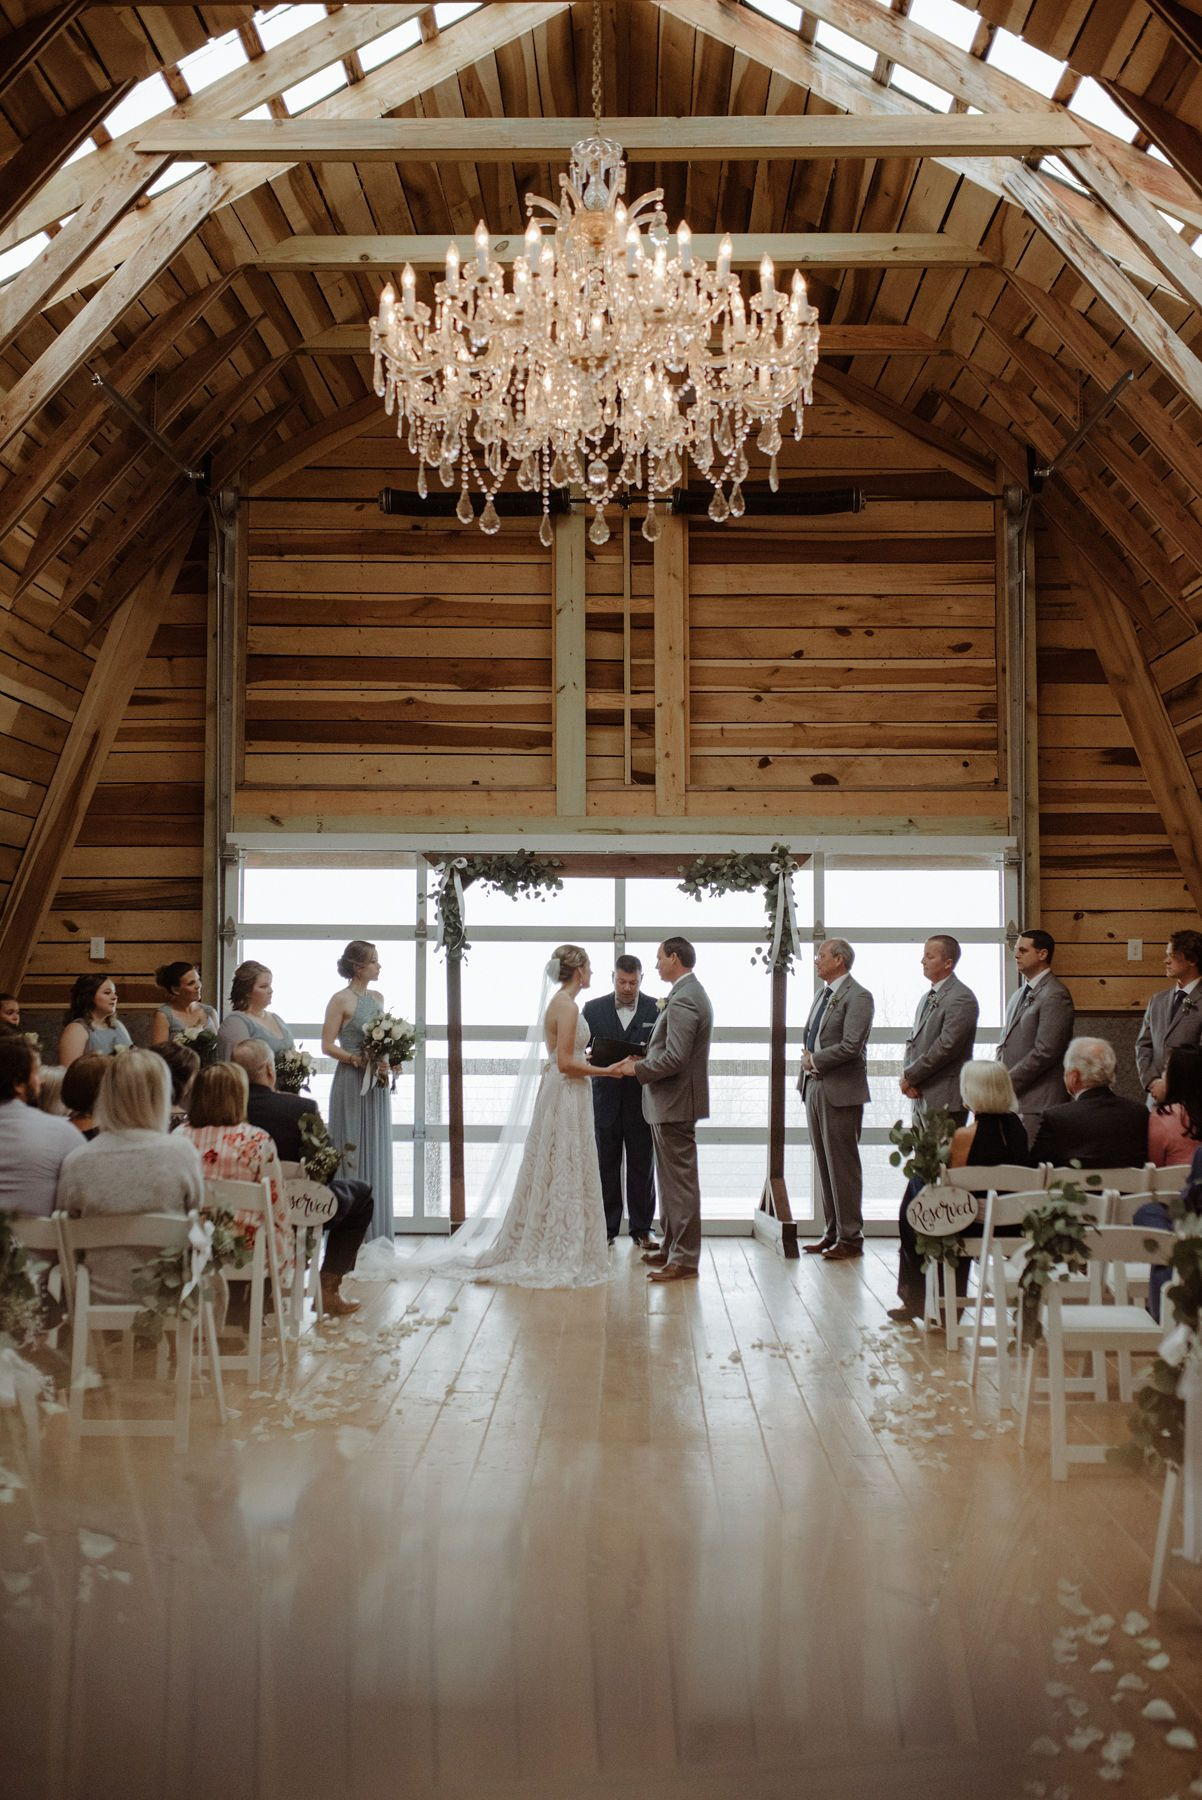 Cliffside Ceremony For 100 People Inside The Renovated Hay Barn At Overlook Barn In 2020 Upscale Weddings Barn Wedding Venue Wedding Venues In Nc